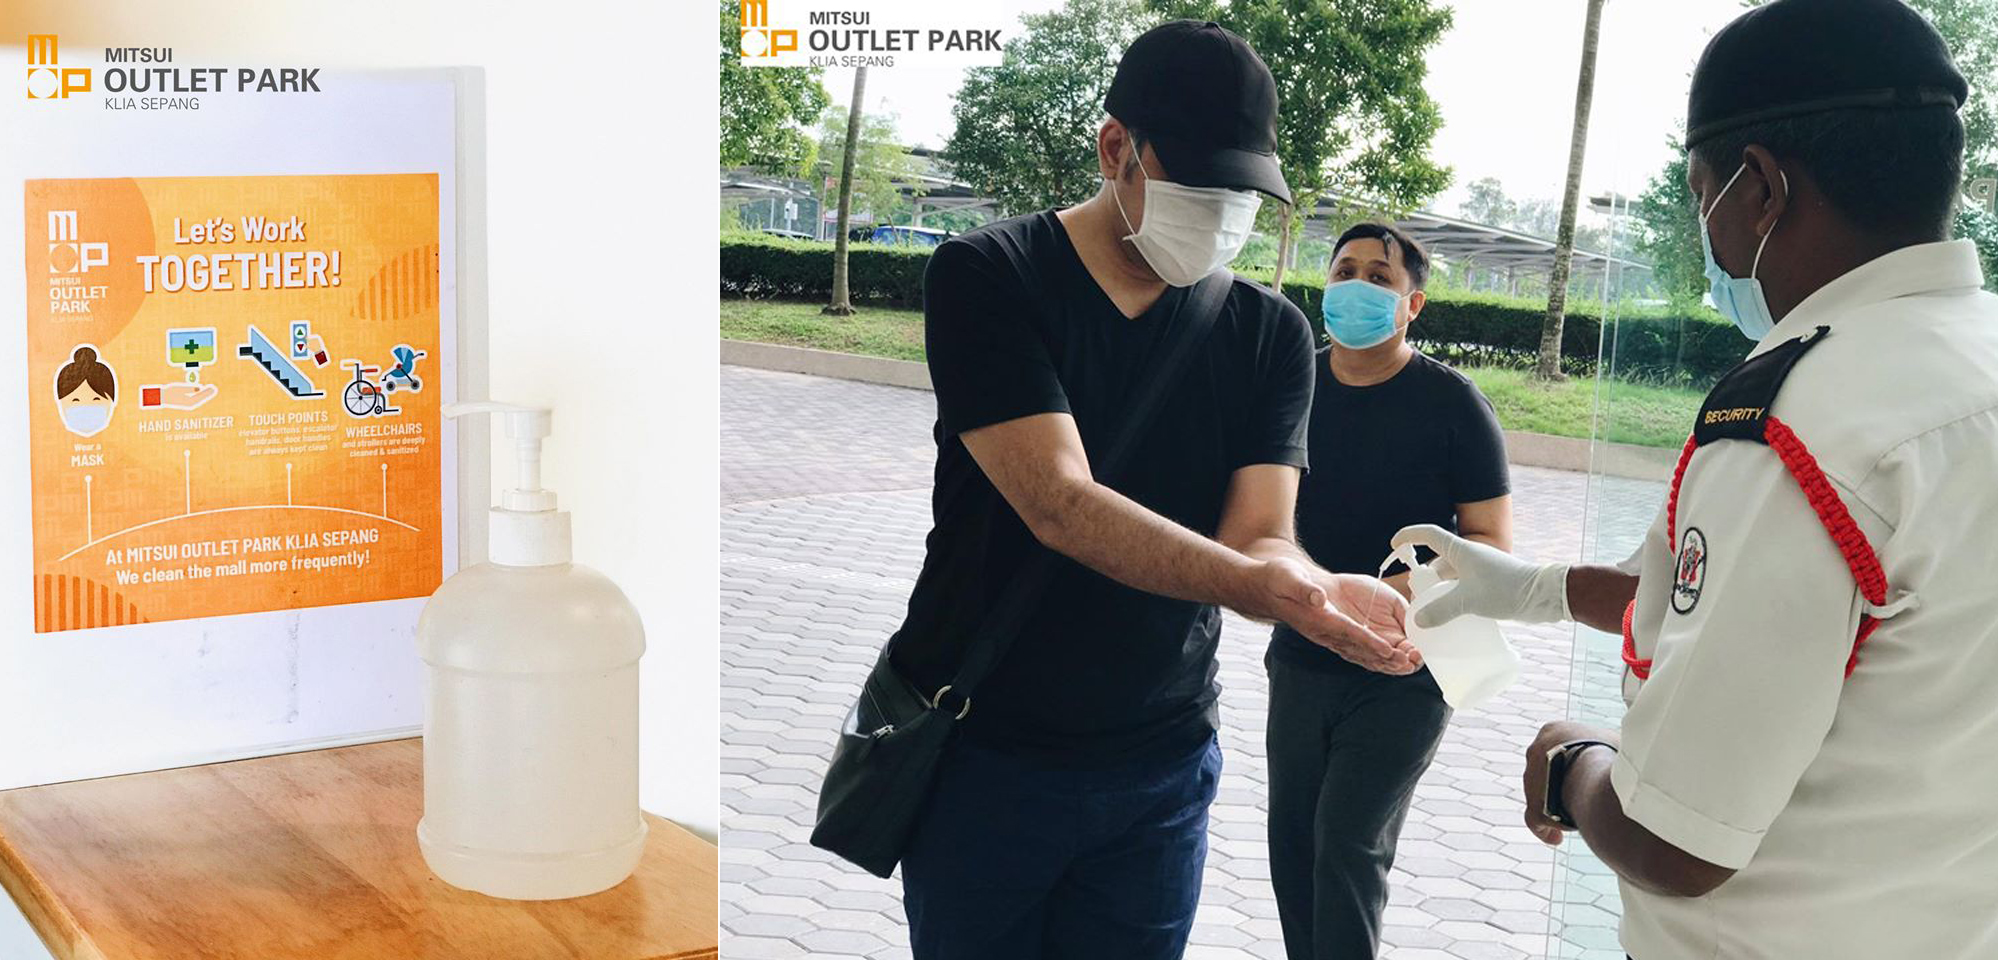 Hand sanitisers are provided at various checkpoints throughout Mitsui Outlet Park KLIA Sepang.